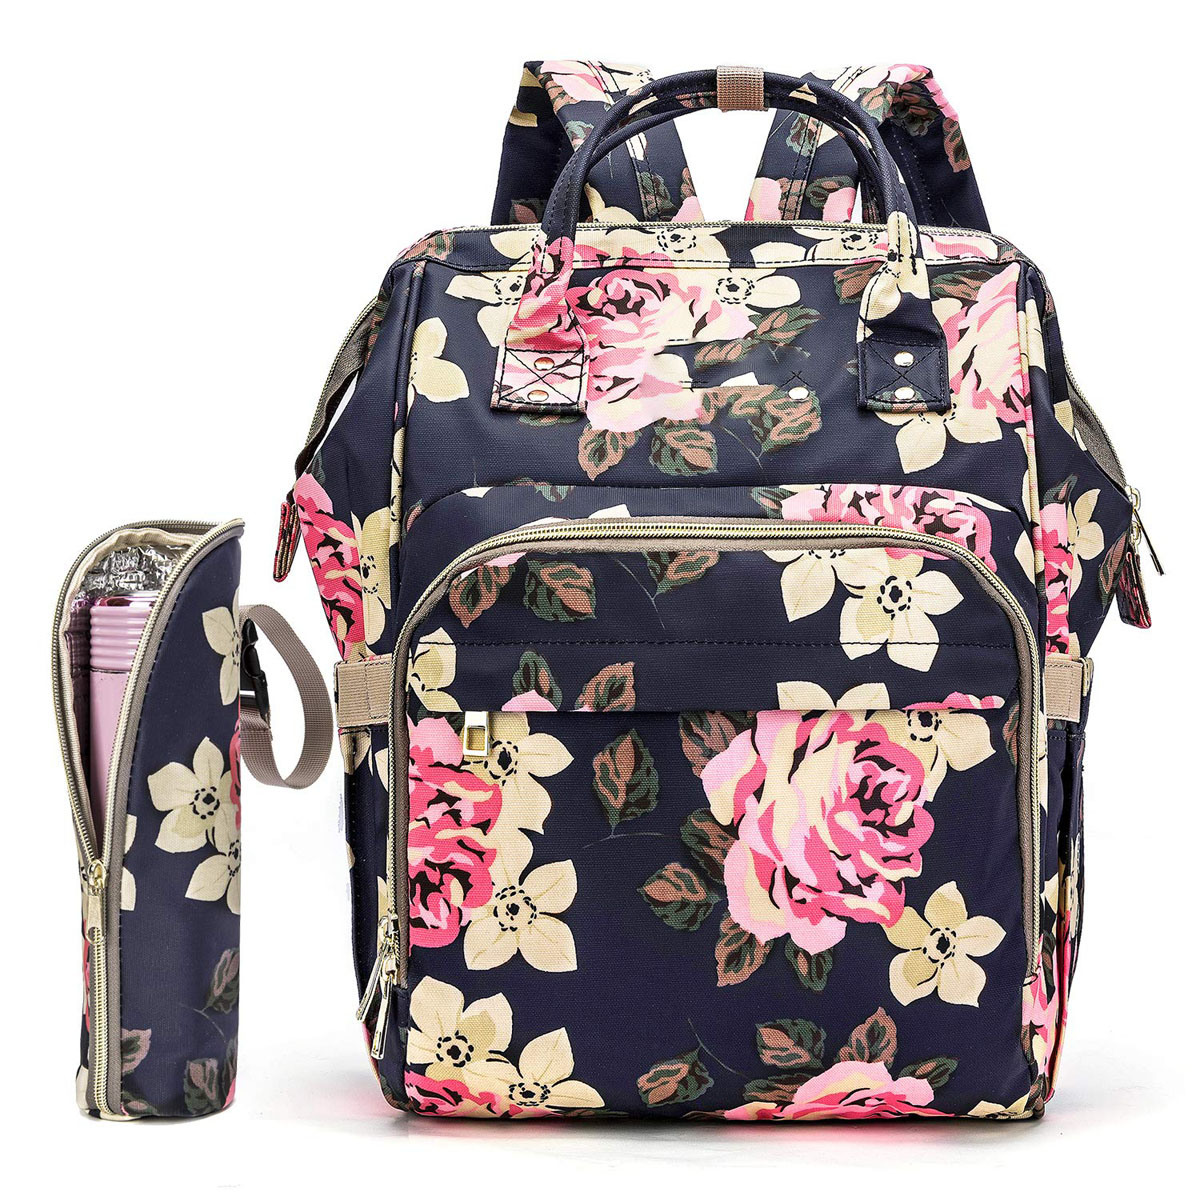 Hot Item Diaper Bag Backpack Fl Baby Water Resistant Ny With Insulated Bottle